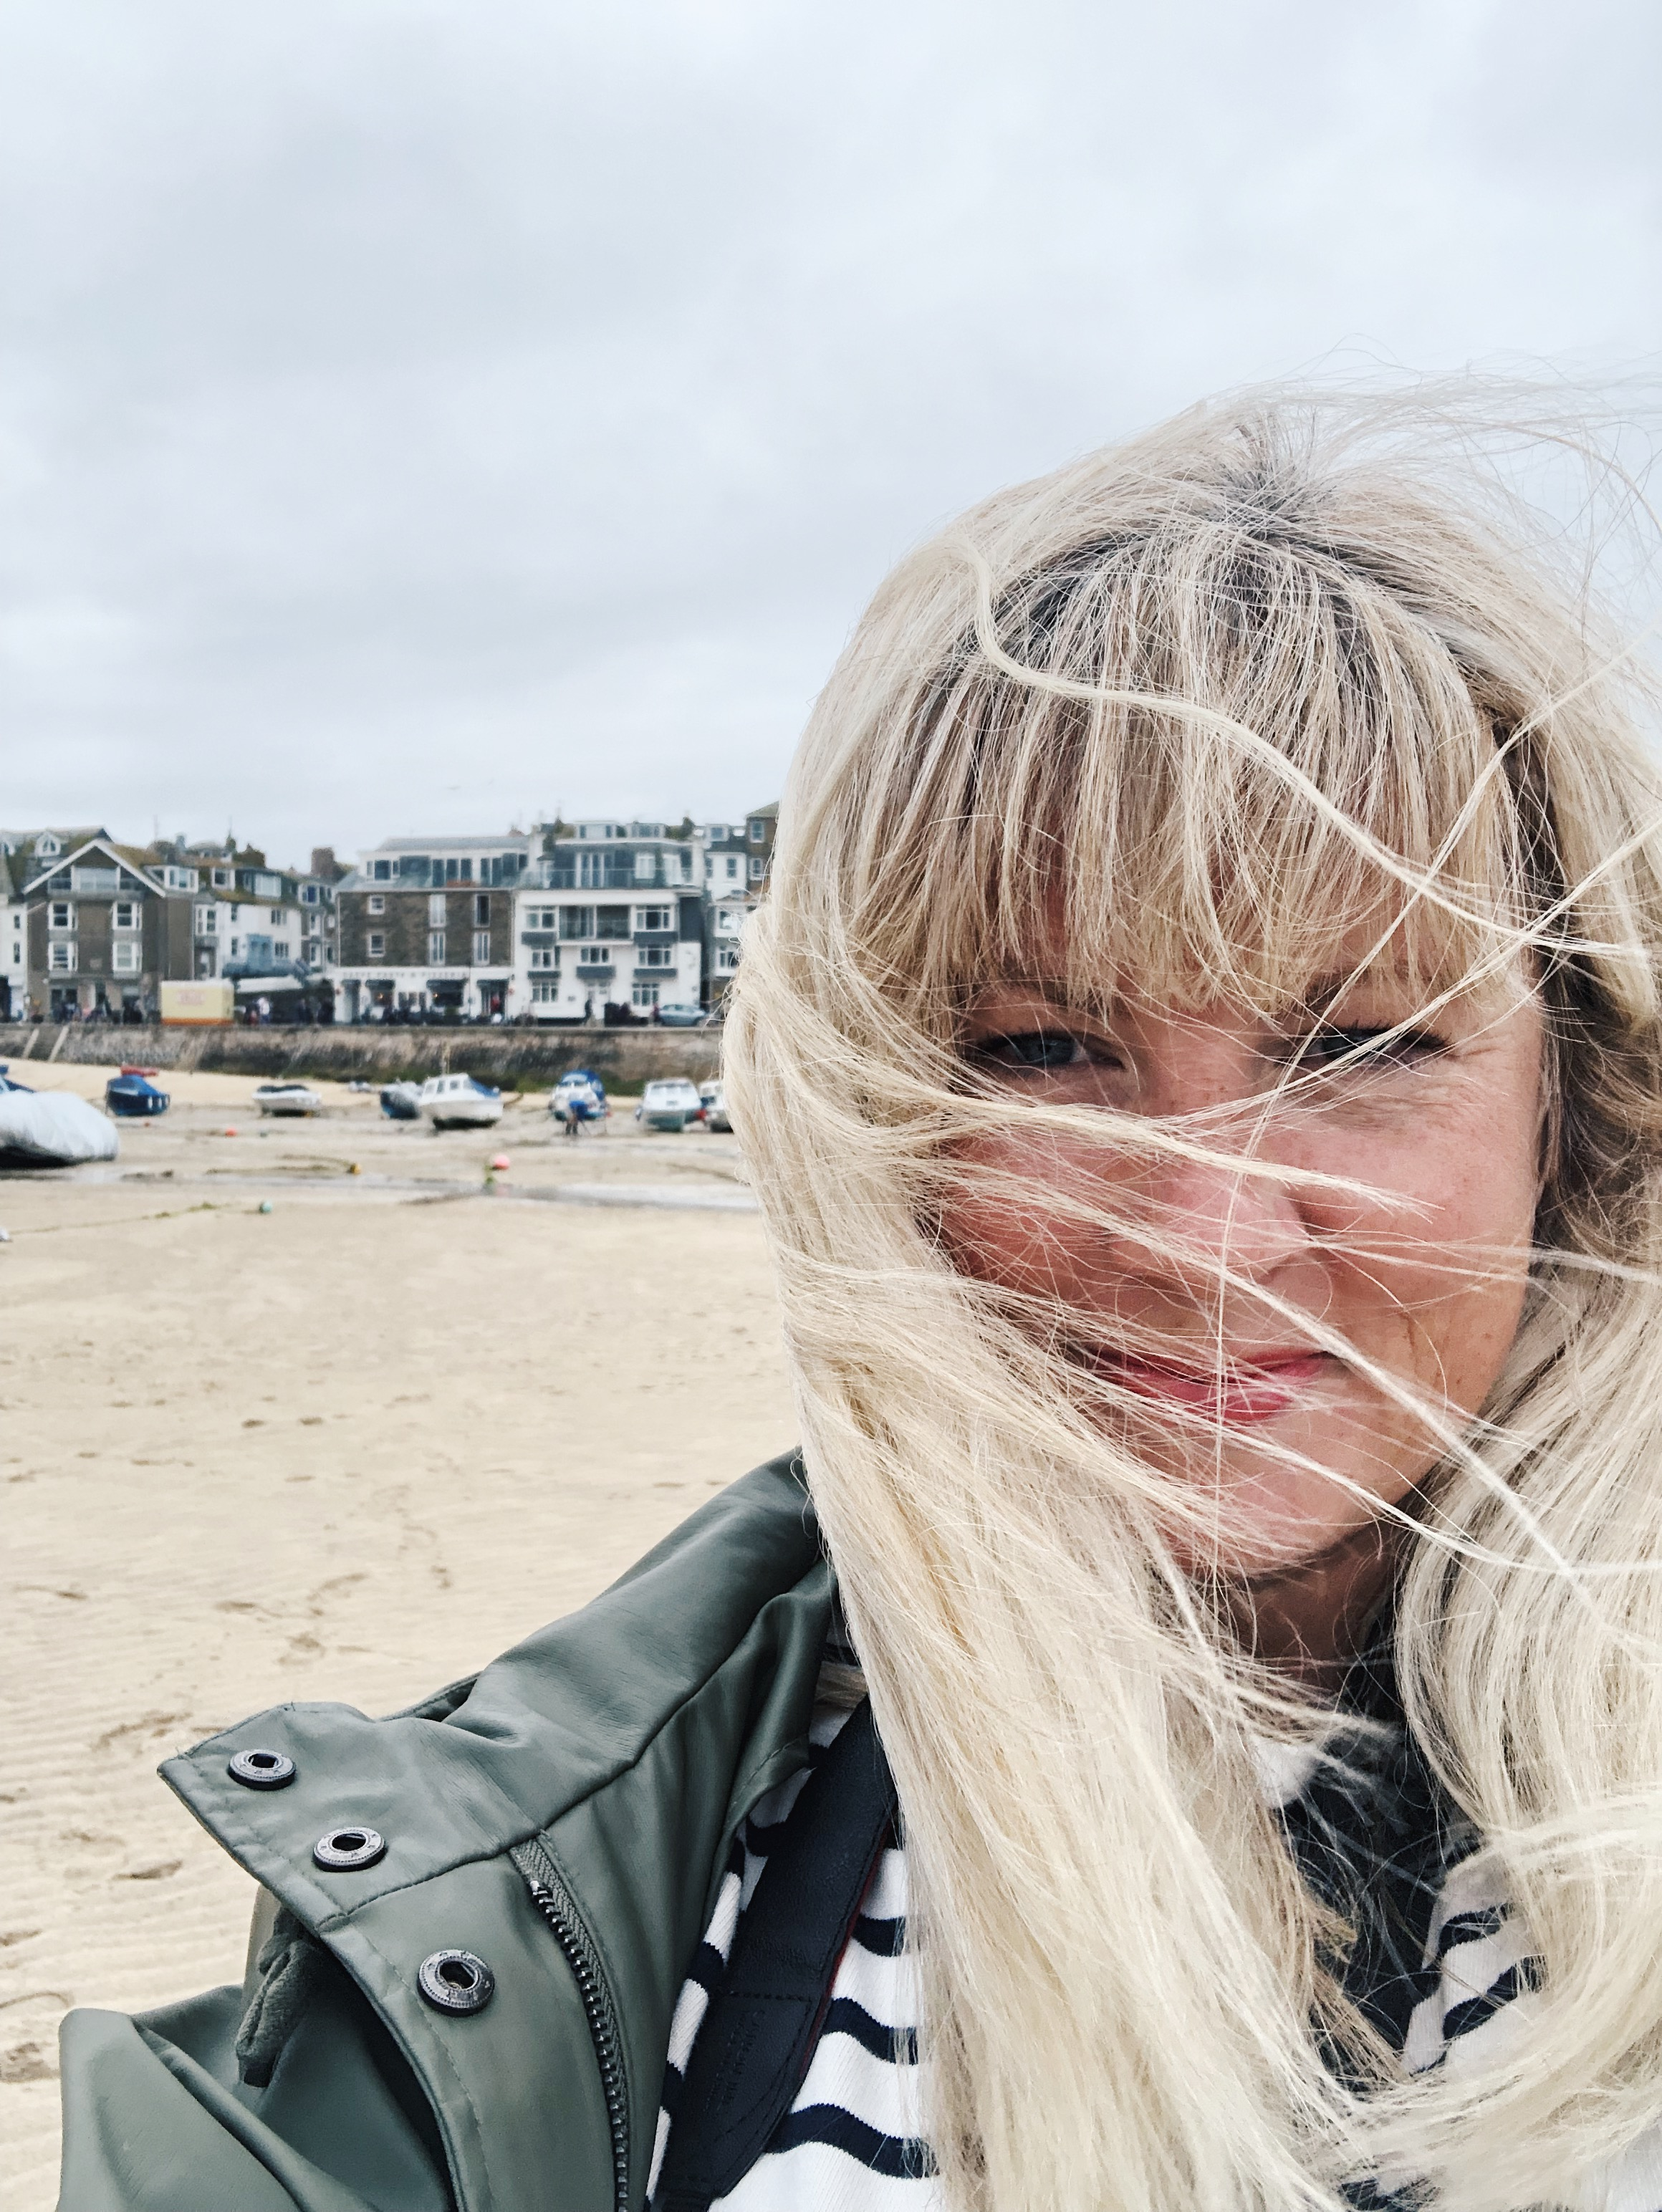 It is advisable to always have a mac or umbrella to hand when staying in St Ives. The weather can change very quickly.